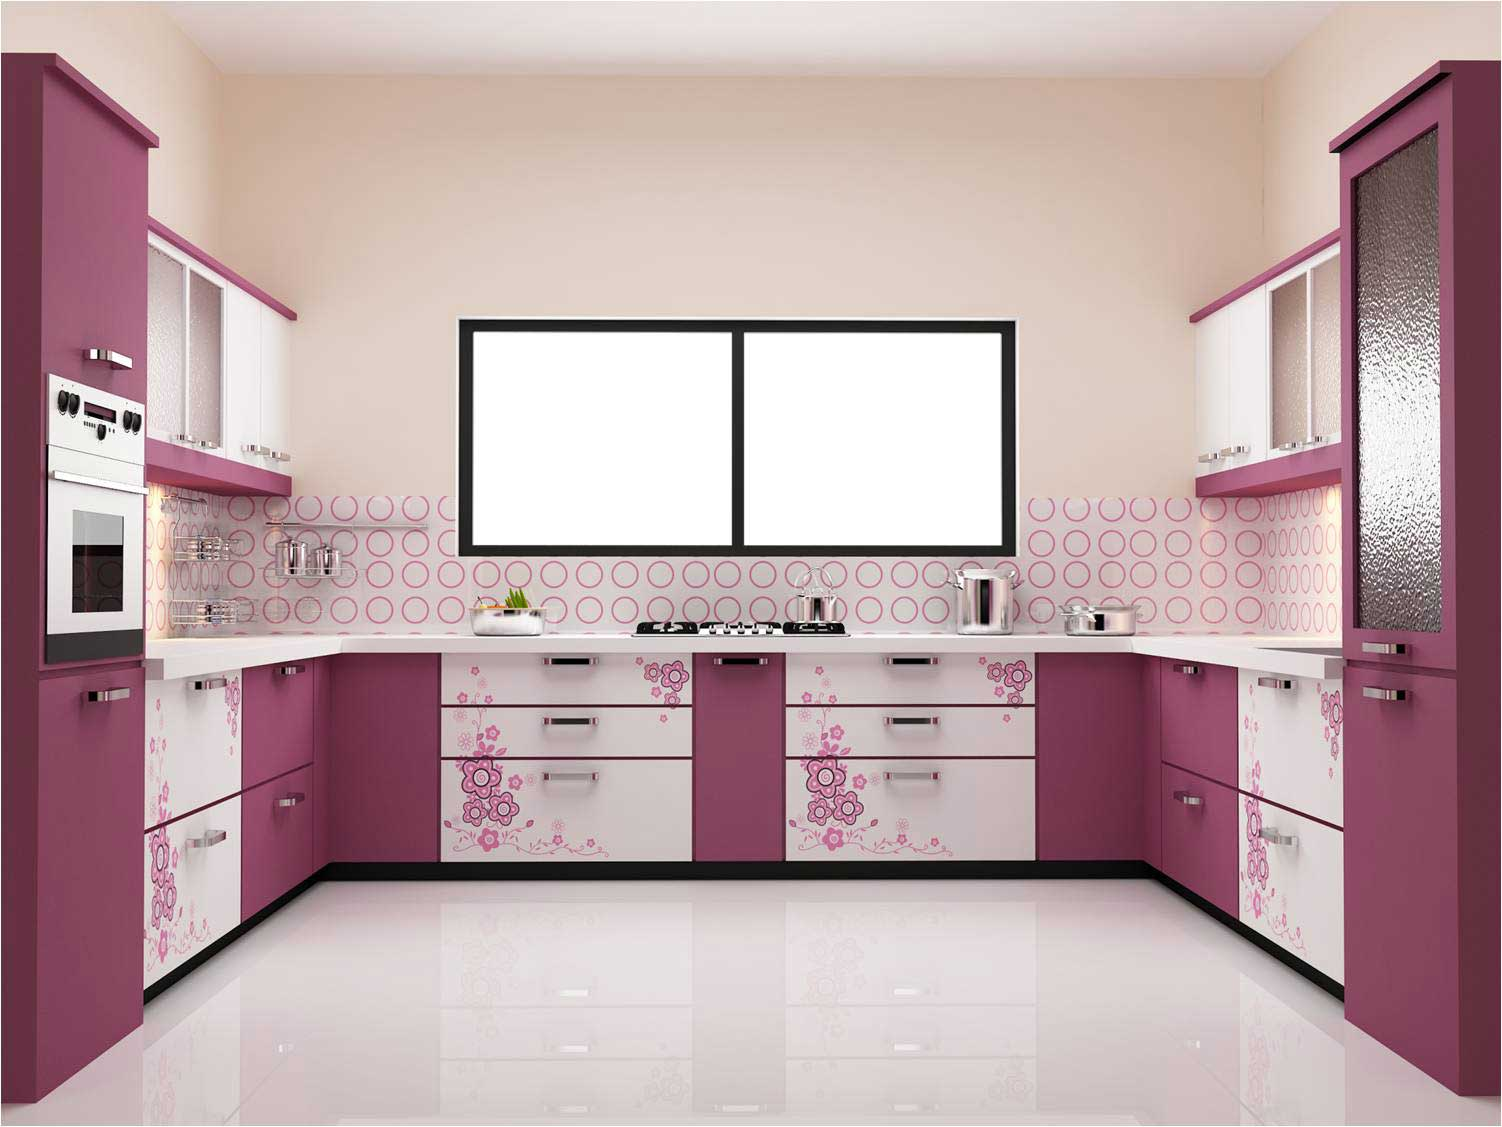 Modular kitchen installation interior decoration kolkata for Kitchen furniture ideas